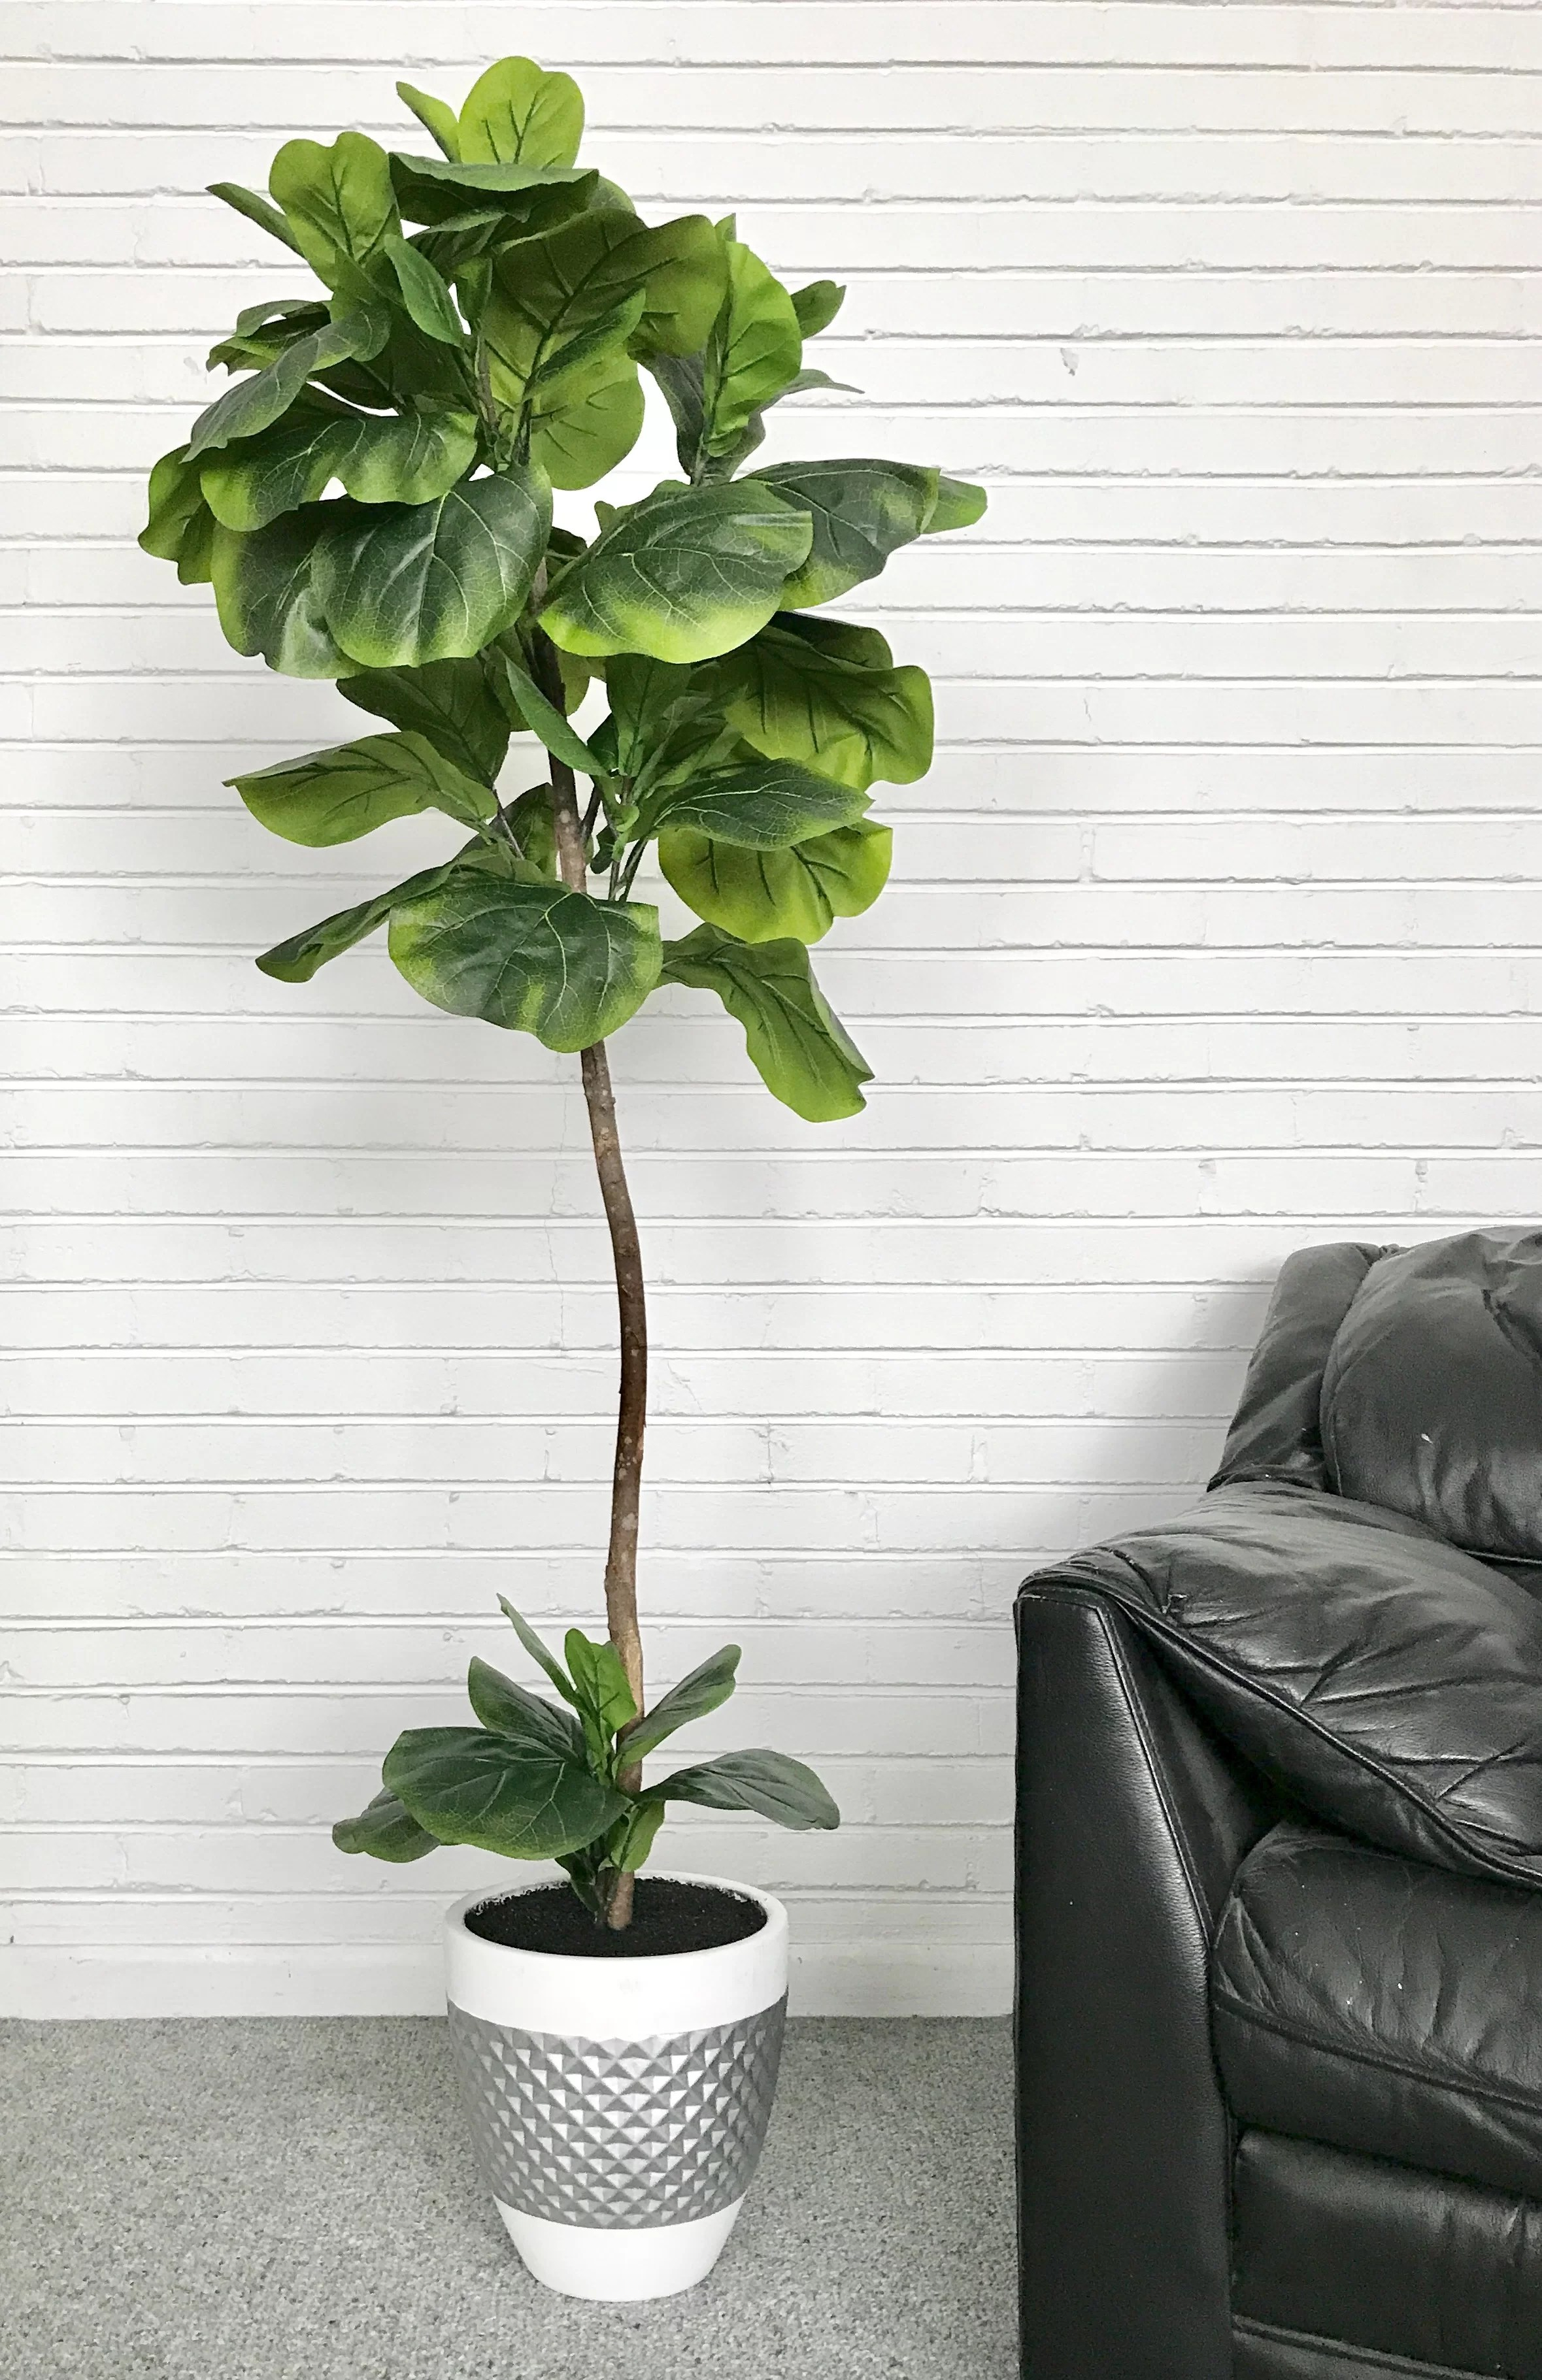 sofas and sectionals com reviews where to buy sofa pillows latitude run fiddle-leaf fig floor palm tree in pot ...